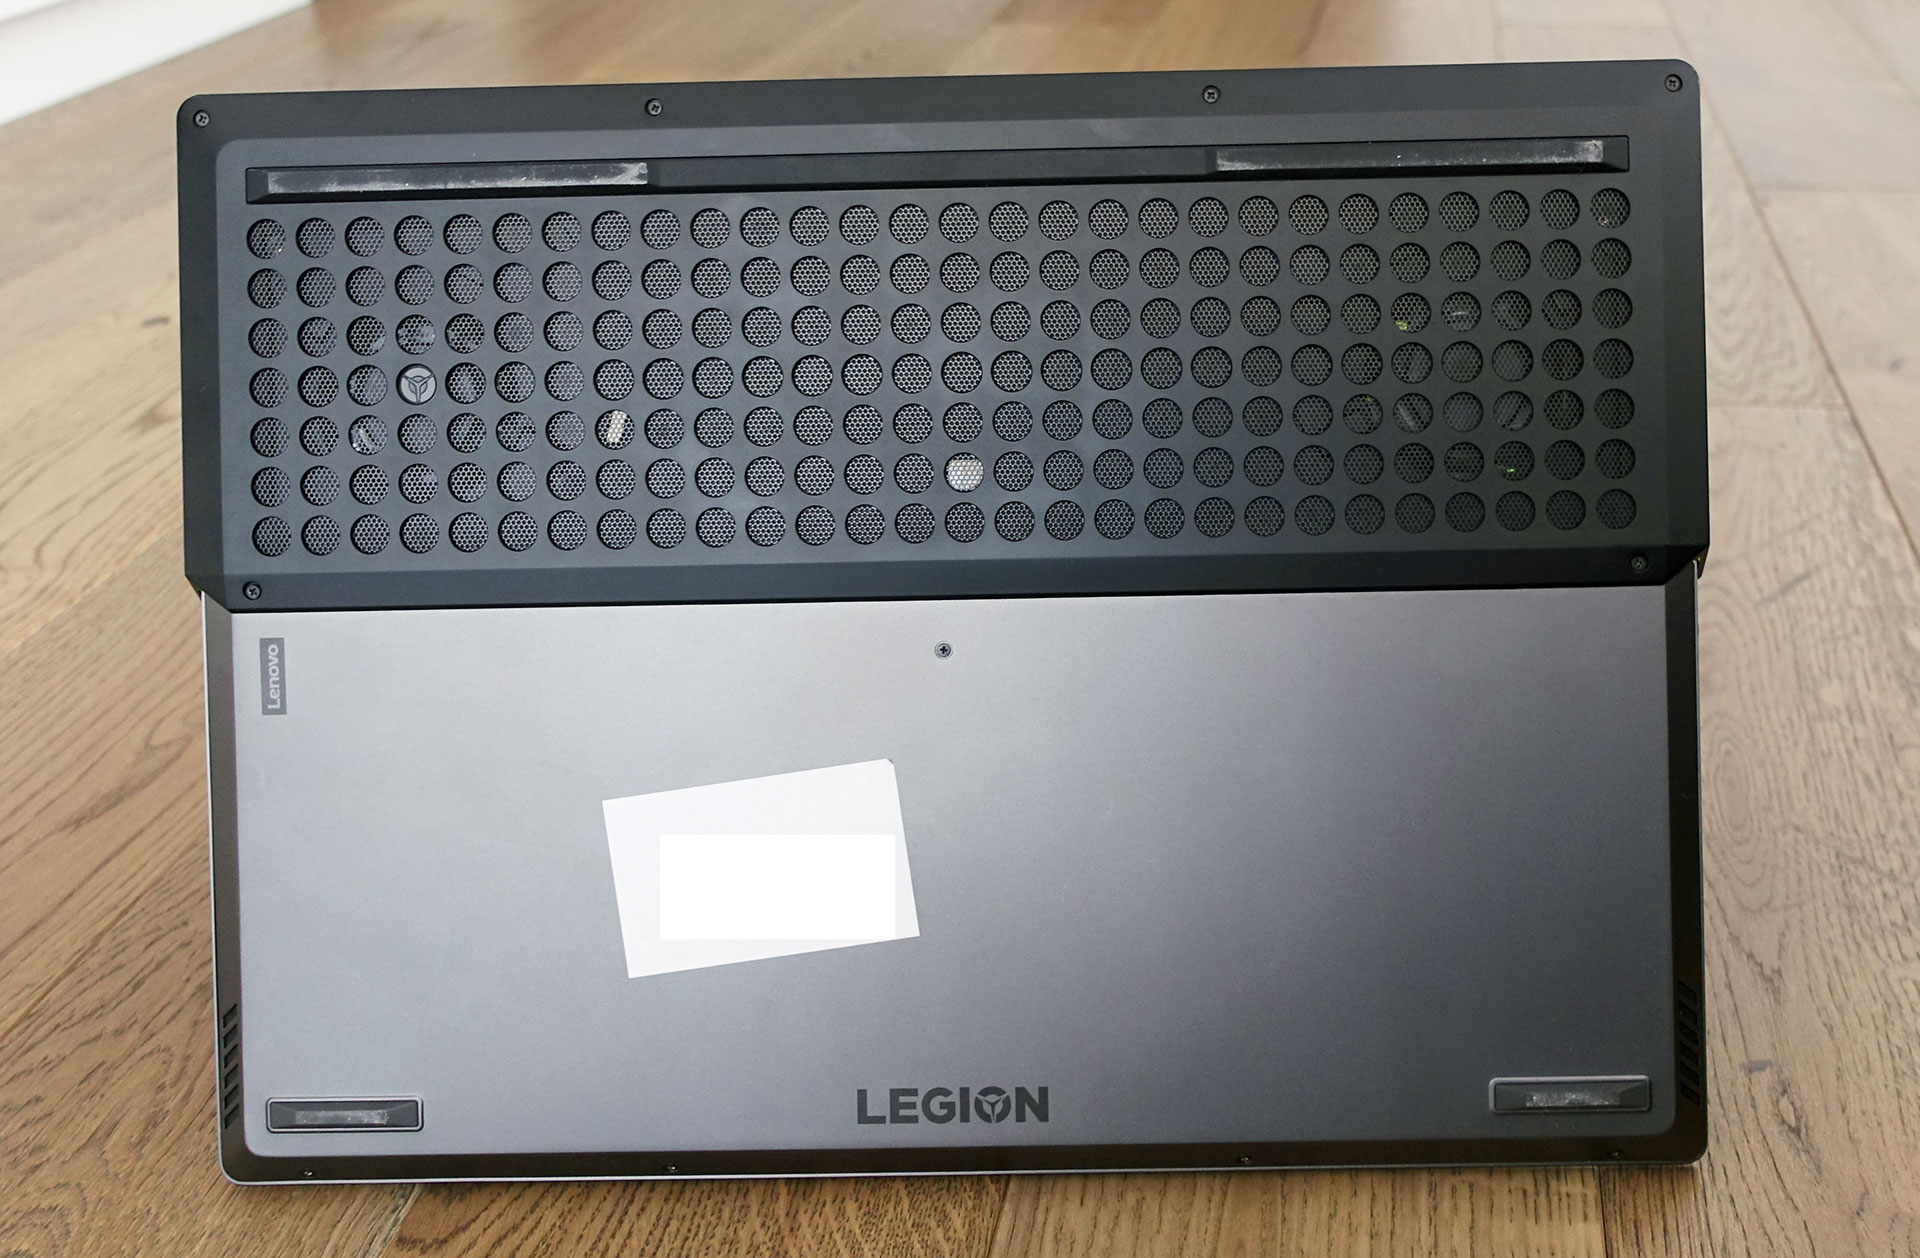 Lenovo Legion Fan Control Software